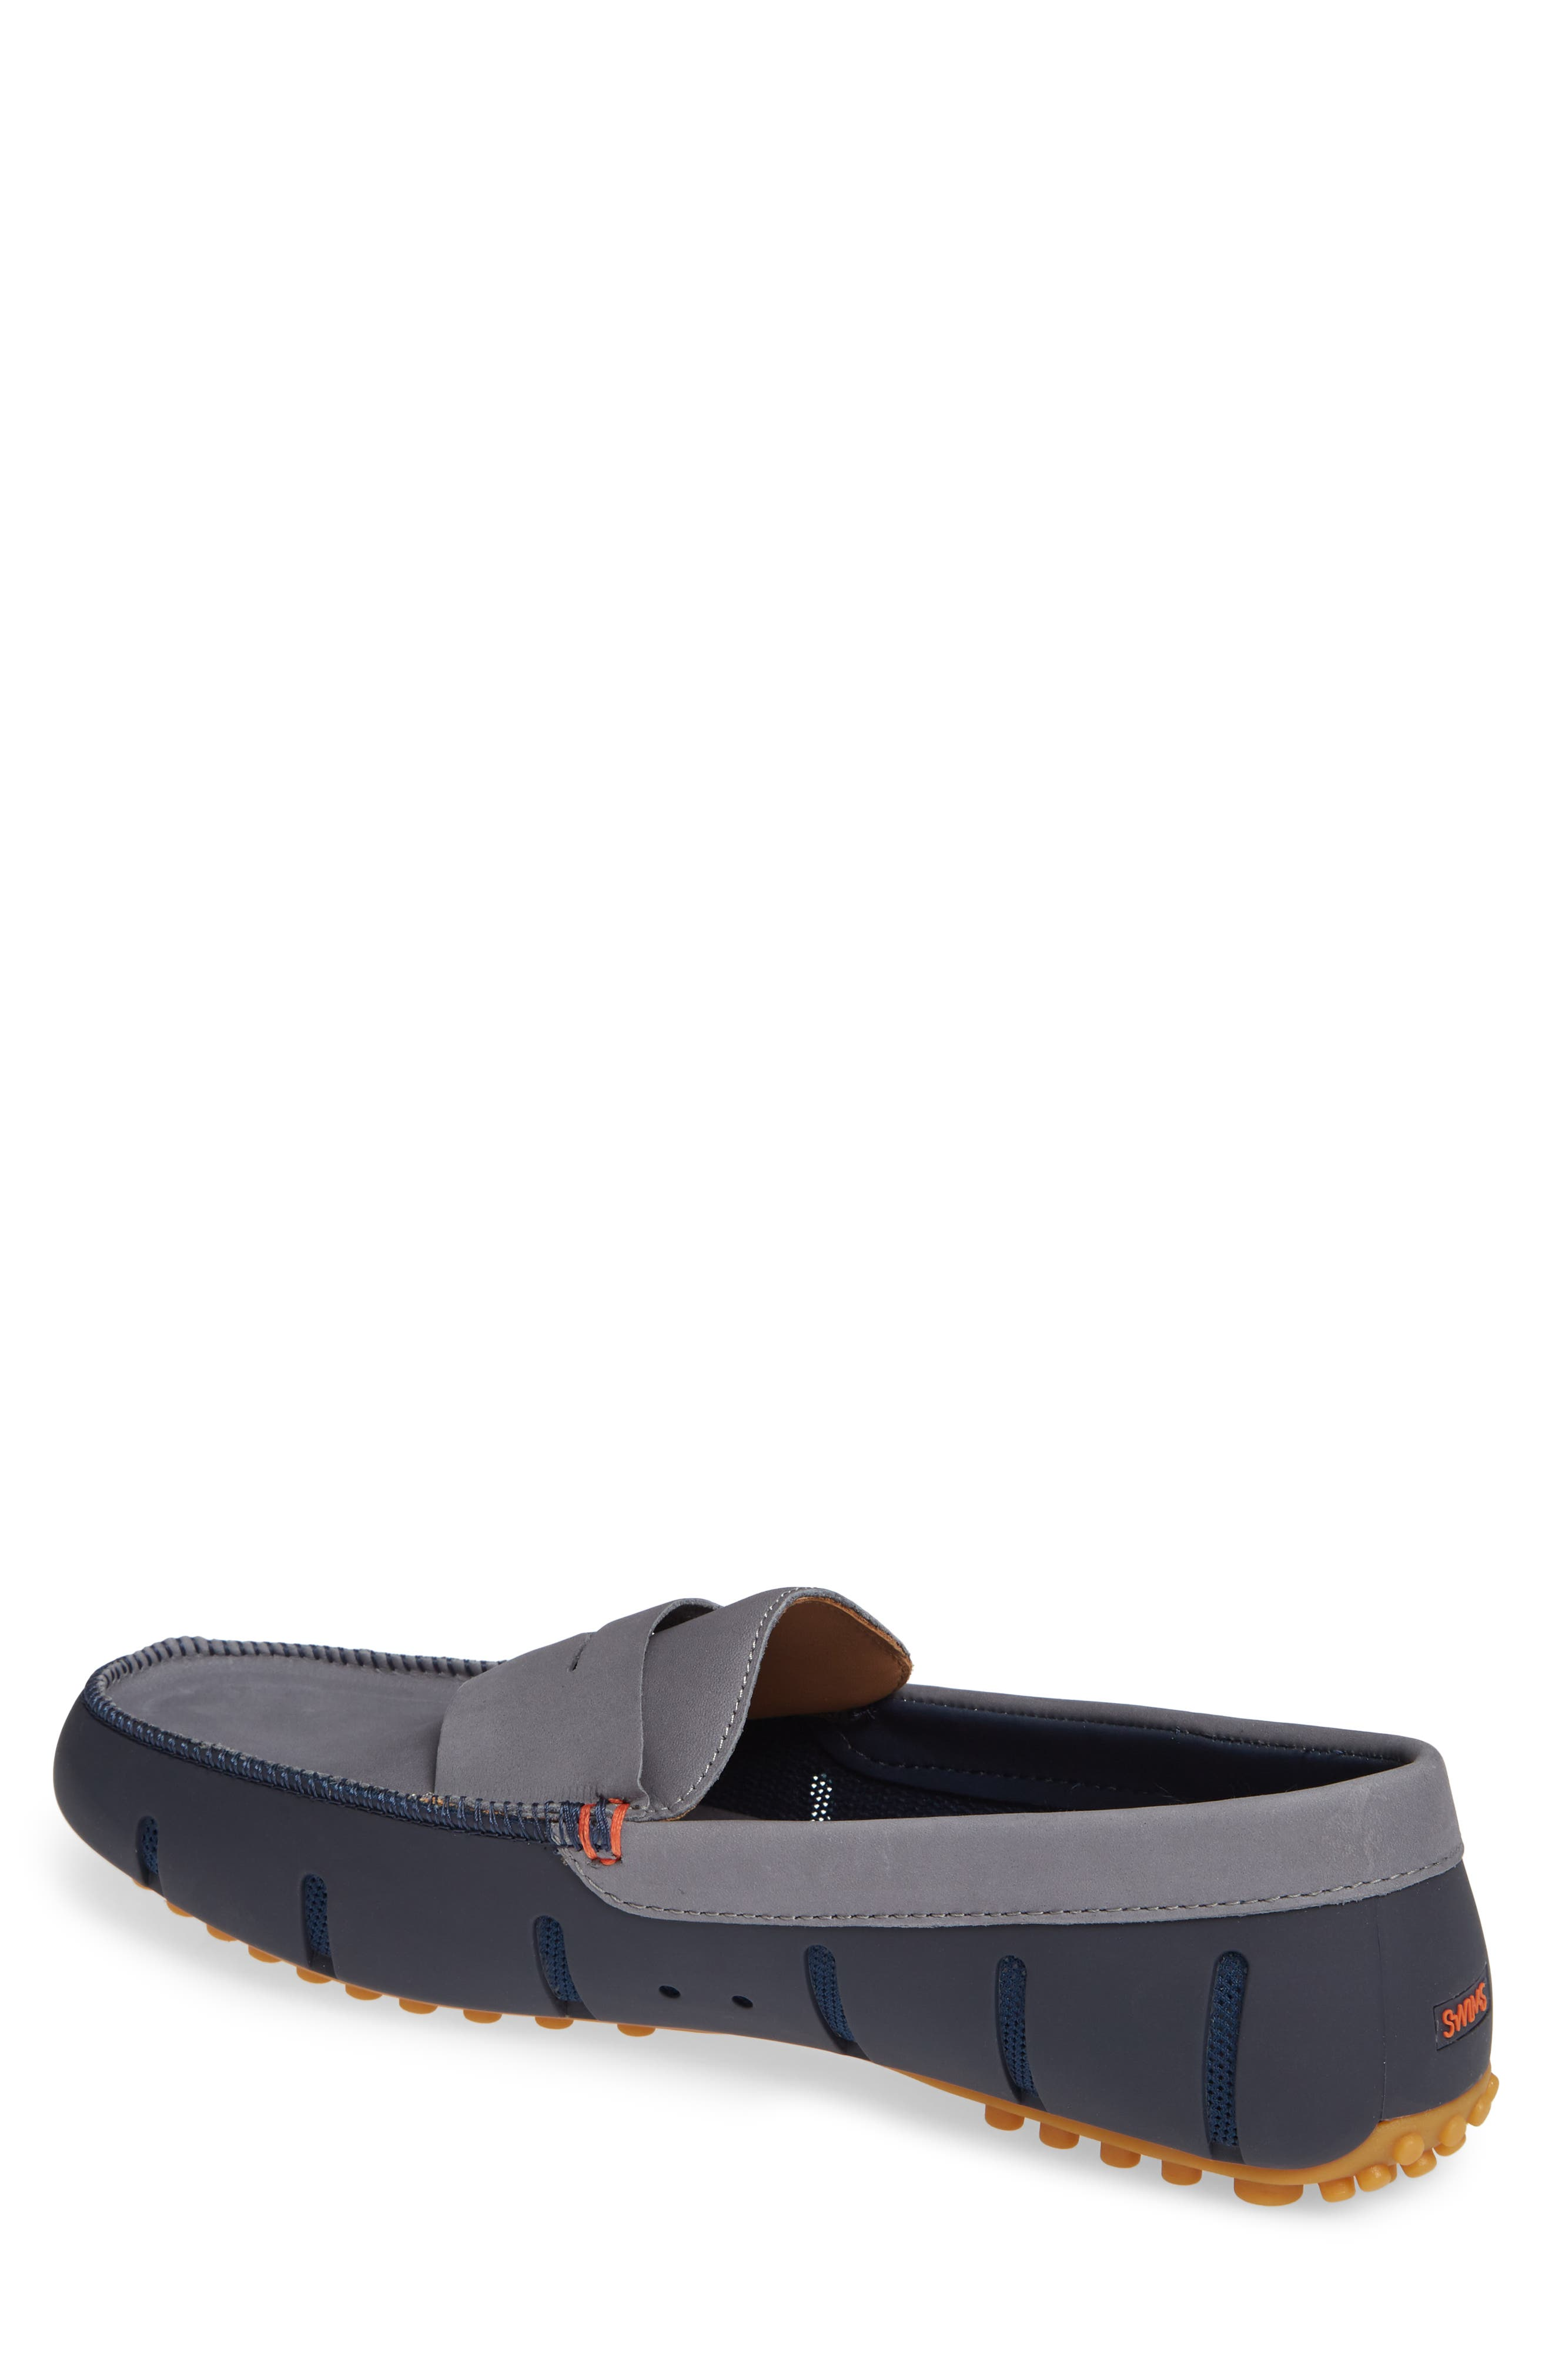 Lux Penny Loafer,                             Alternate thumbnail 2, color,                             NAVY/ GRAY/ GUM